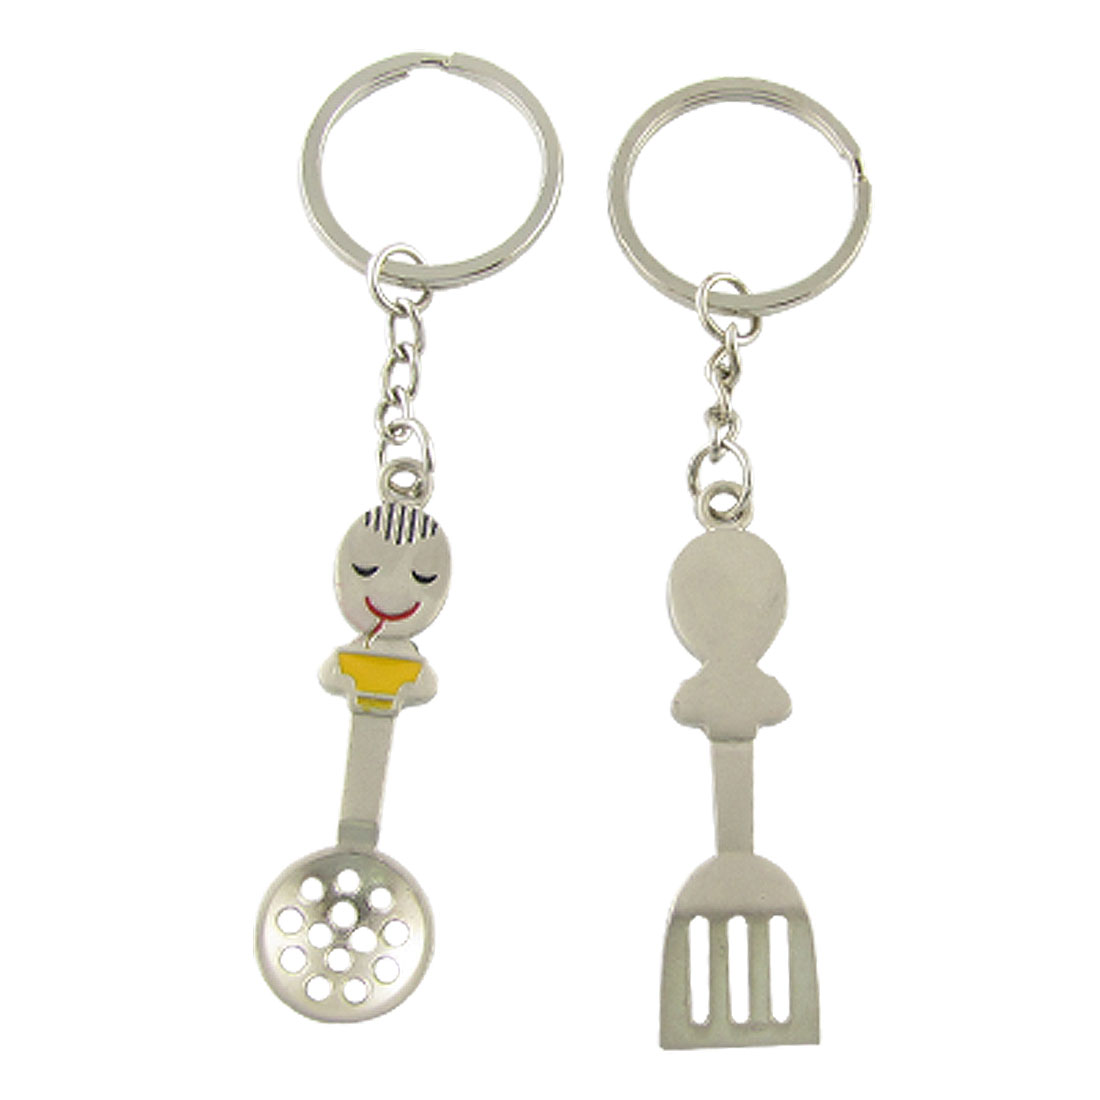 Pair Girl Boy Design Silver Tone Key Chain Keyring for Couple